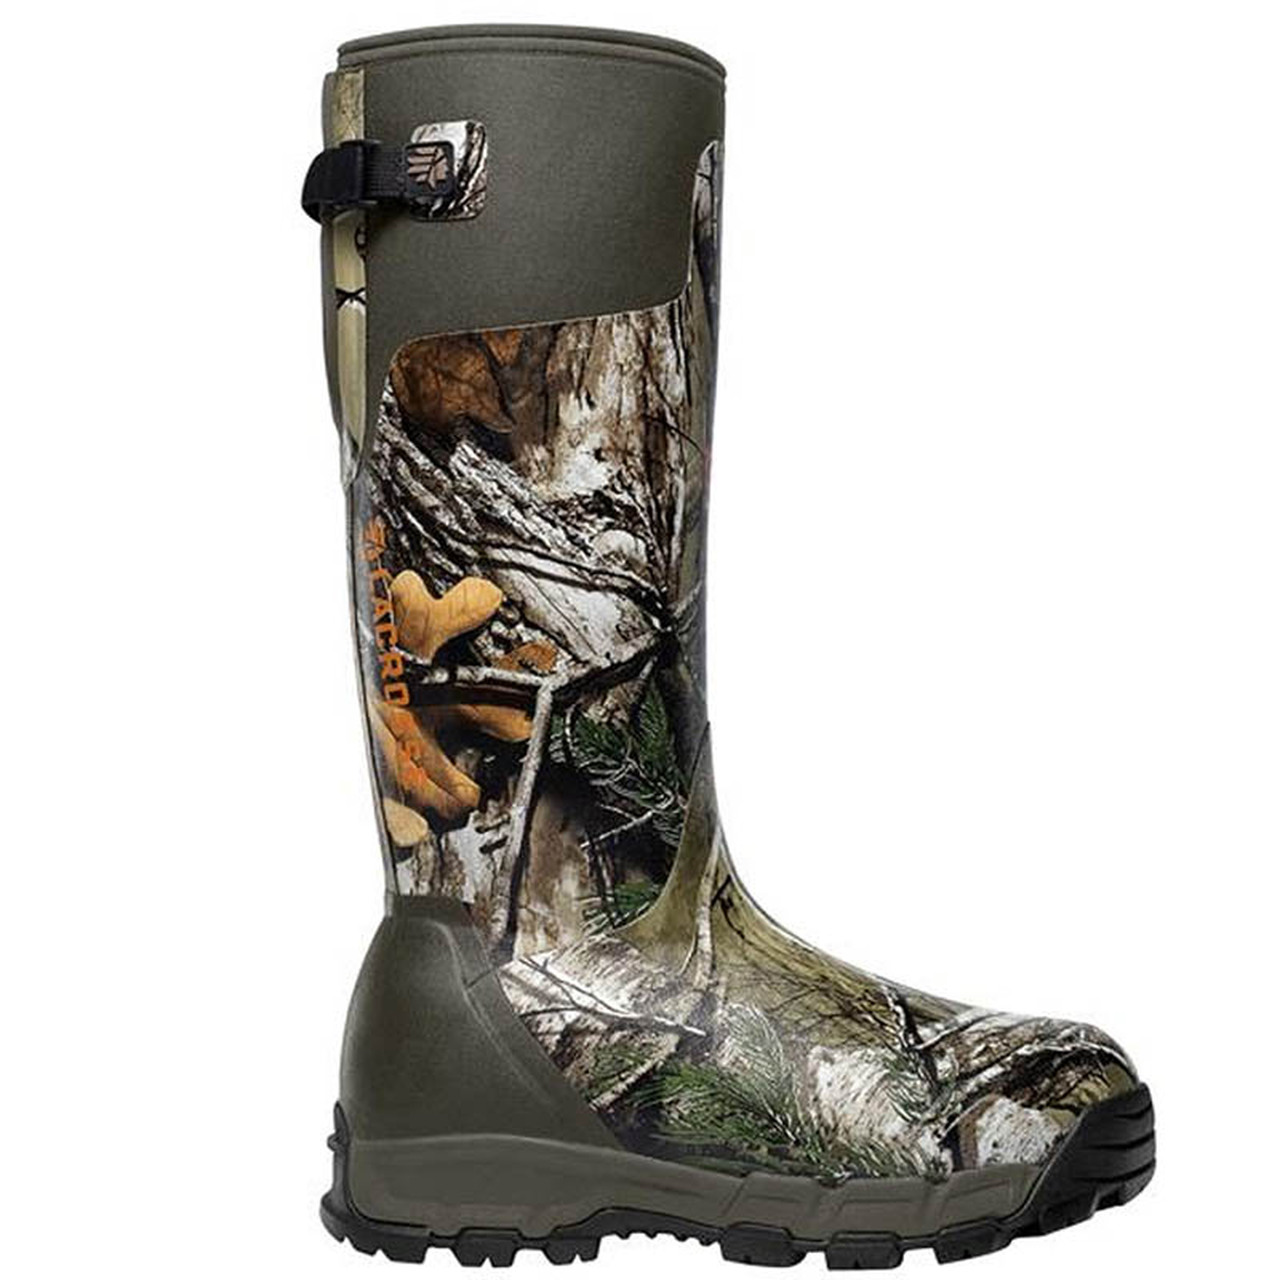 d51d0aa84d6 LaCrosse 376019 ALPHABURLY PRO REALTREE CAMO 1600g Hunting Boots